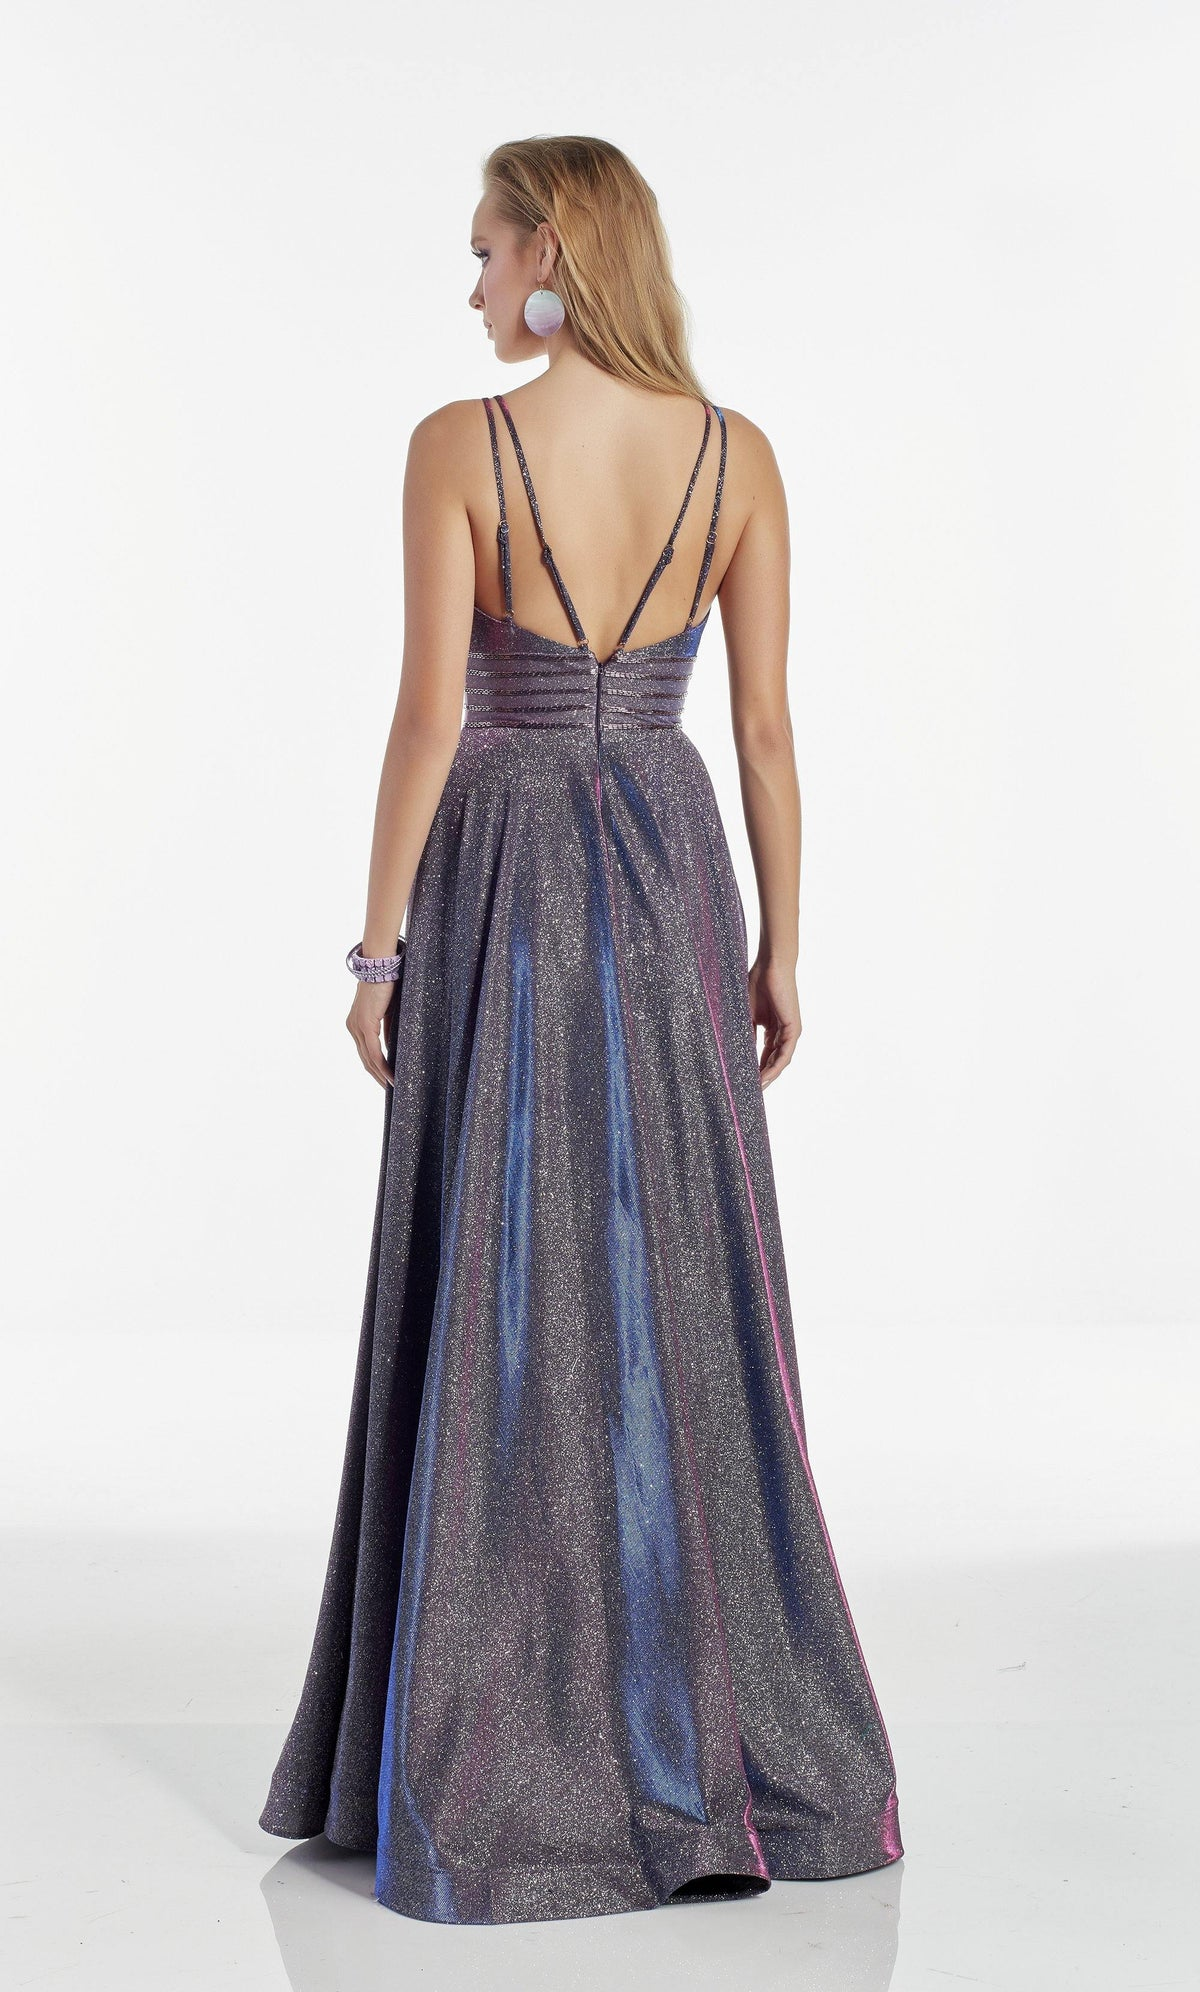 Iridescent Blue formal dress with a beaded waist and adjustable straps